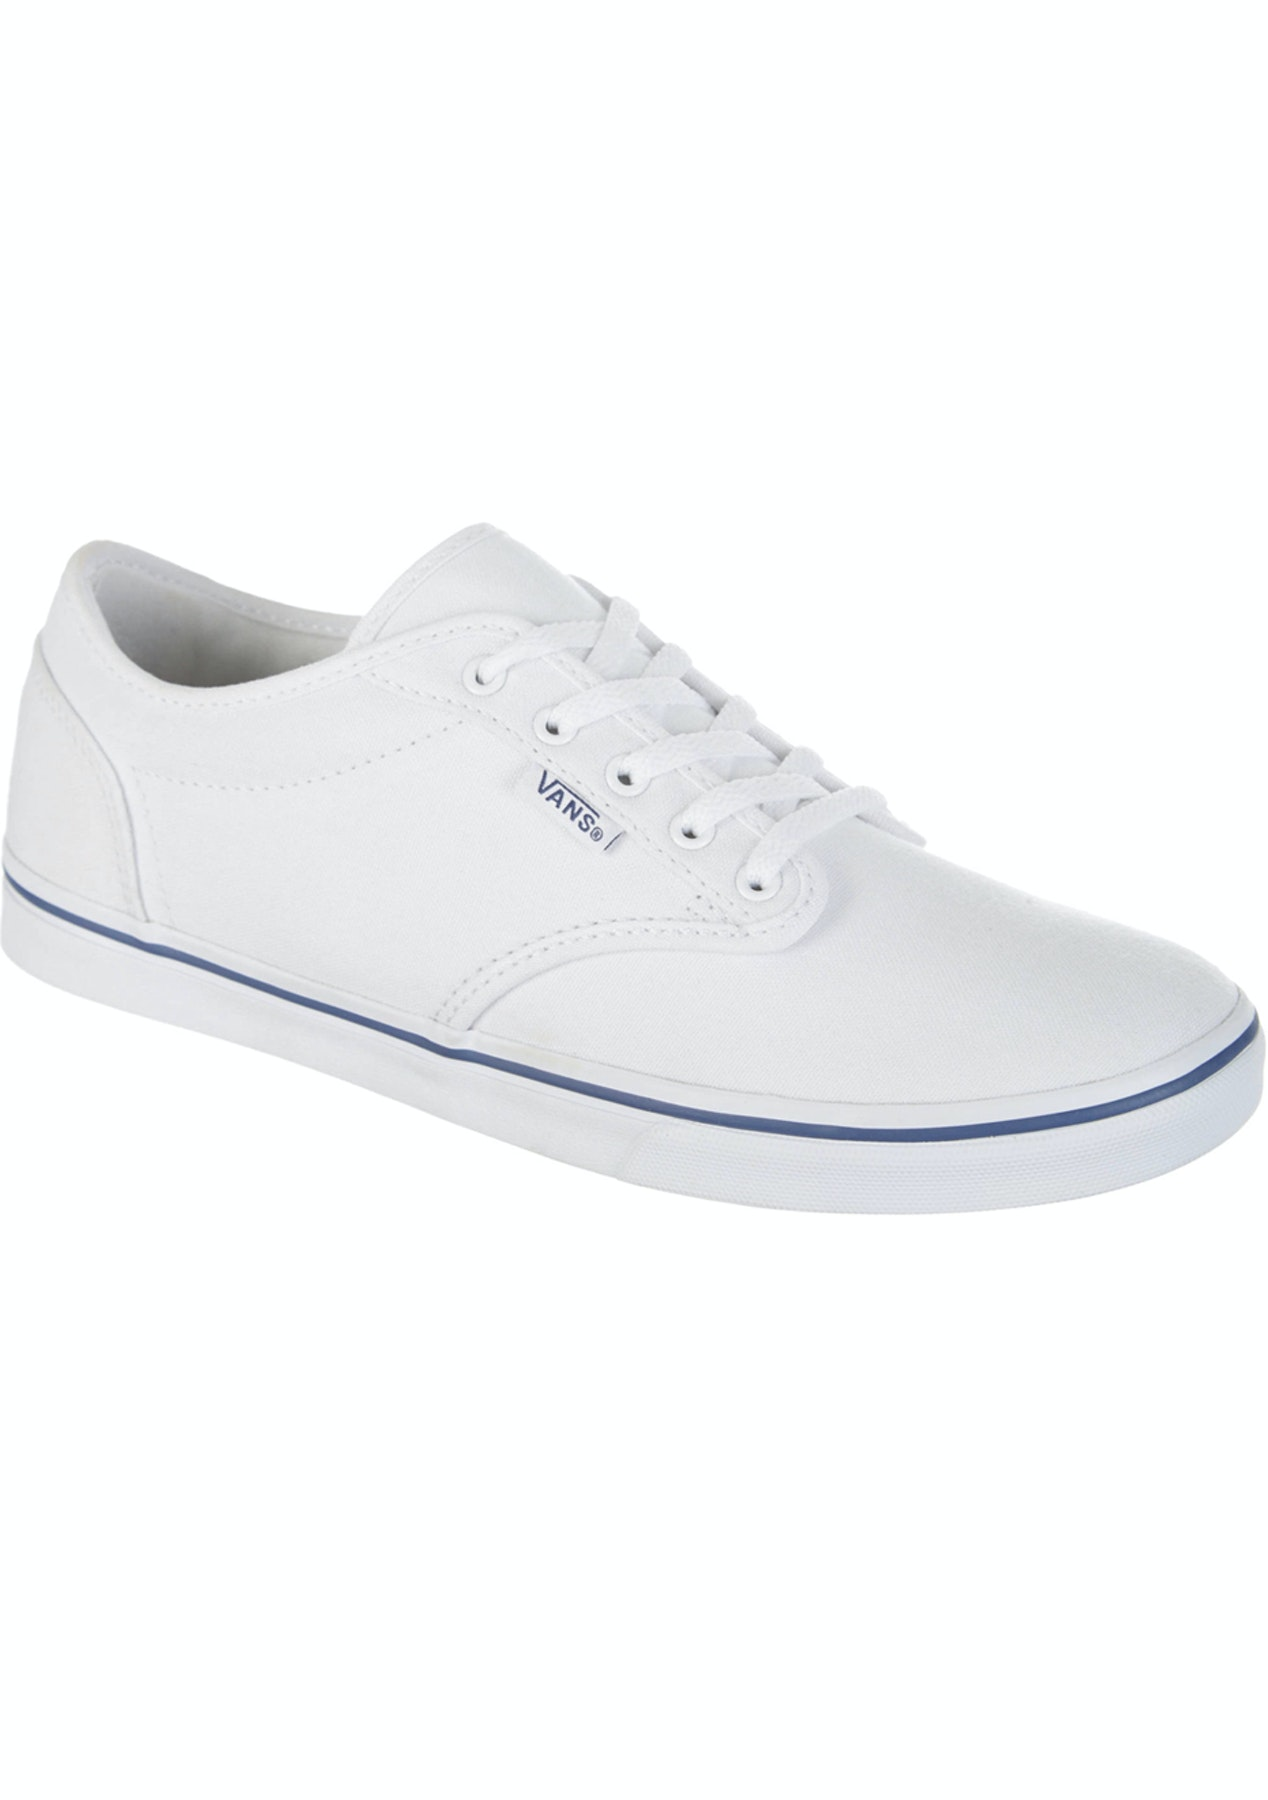 133bbc08adc573 Vans - Womens Atwood Low - Canvas - White Navy - Street Shoes - Onceit